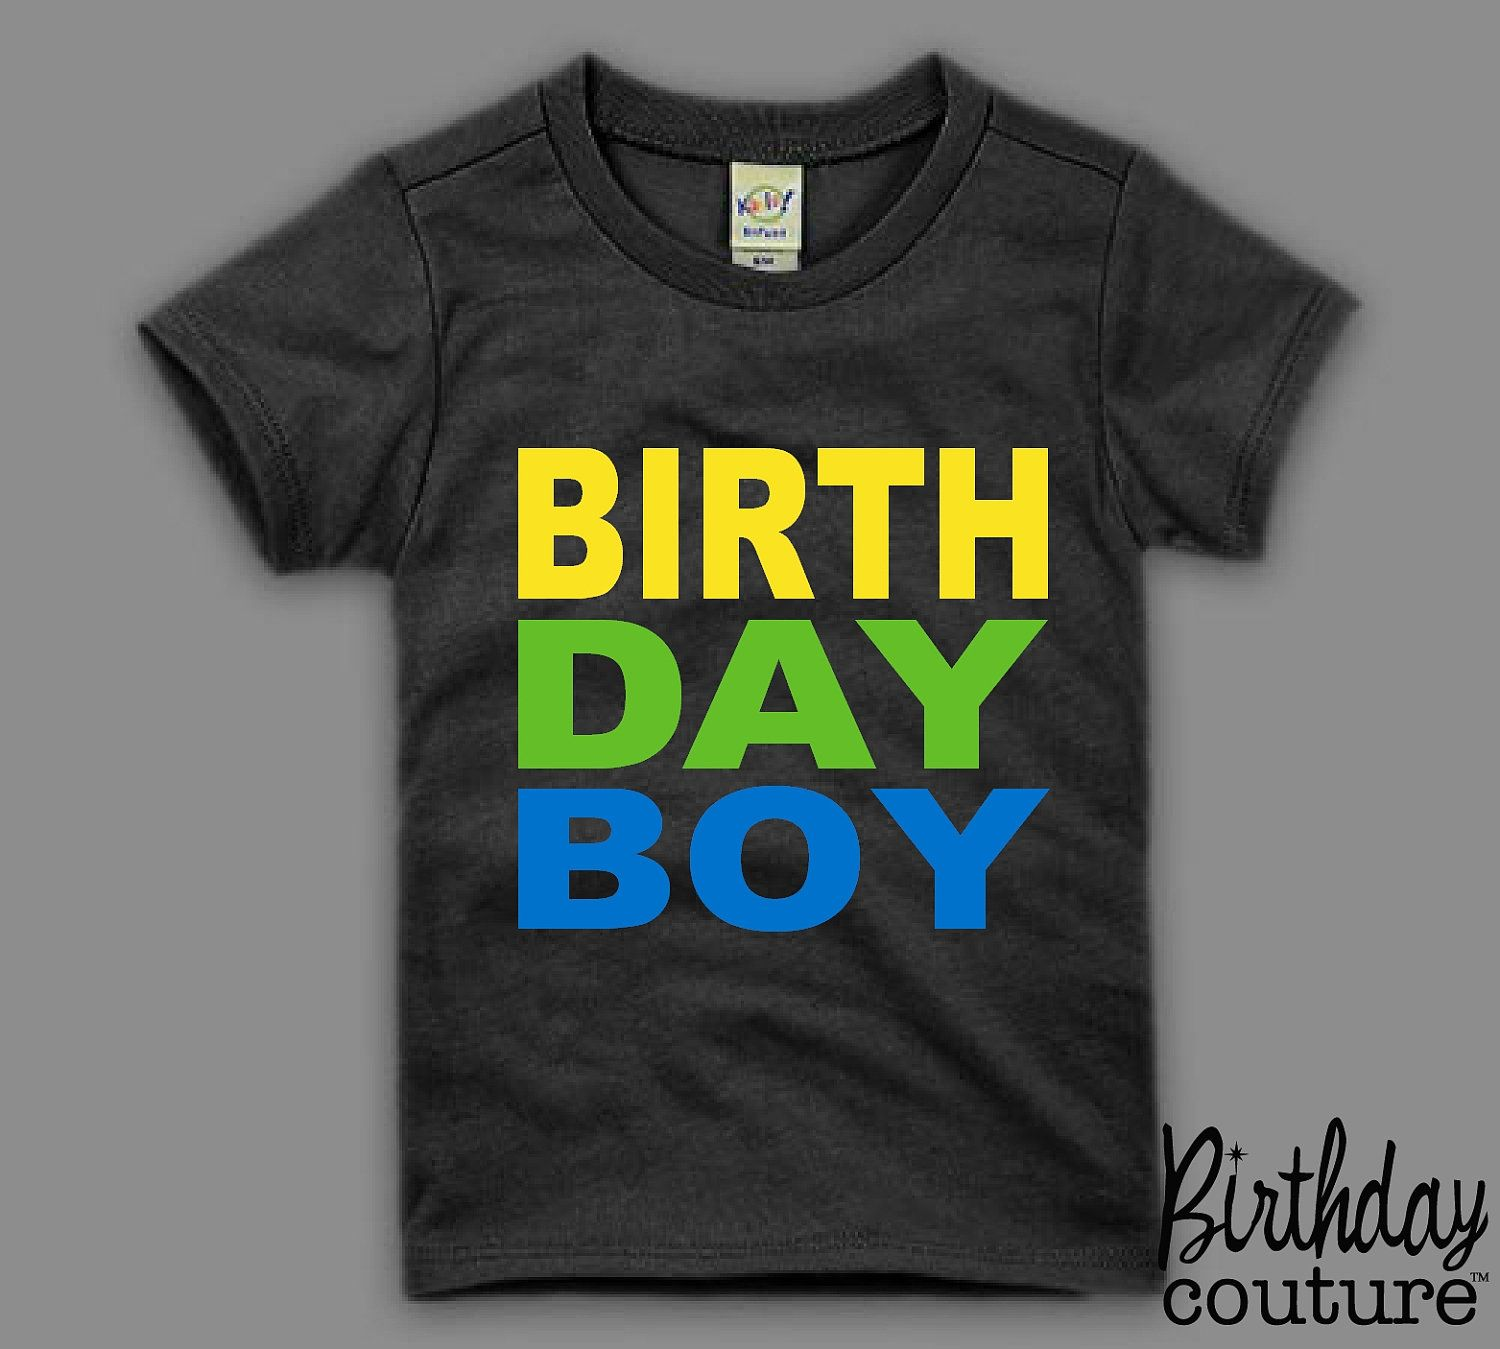 Birthday Boy Tshirt Birthday Boy Tee Fun Colorful